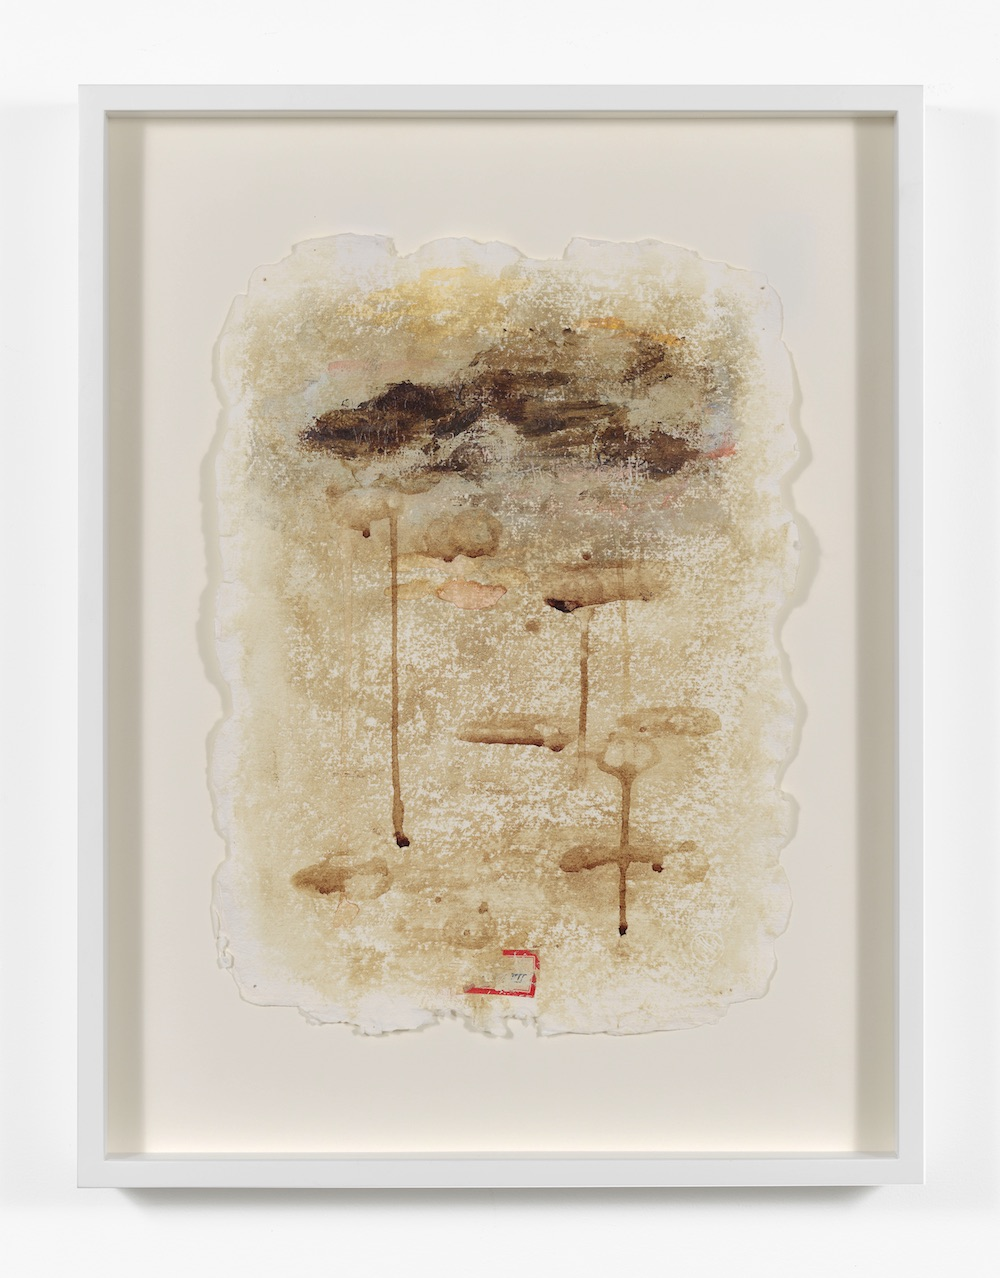 Harmony Hammond, Blood Journals (Giorno 1 – X) , 1994. Menstrual blood, watercolour, charcoal, ink, stickers on paper (10 pages). Each 38.10 x 27.94 cm. Courtesy of the artist and Alexander Gray Associates, New York Photo_ Jeffrey Sturges